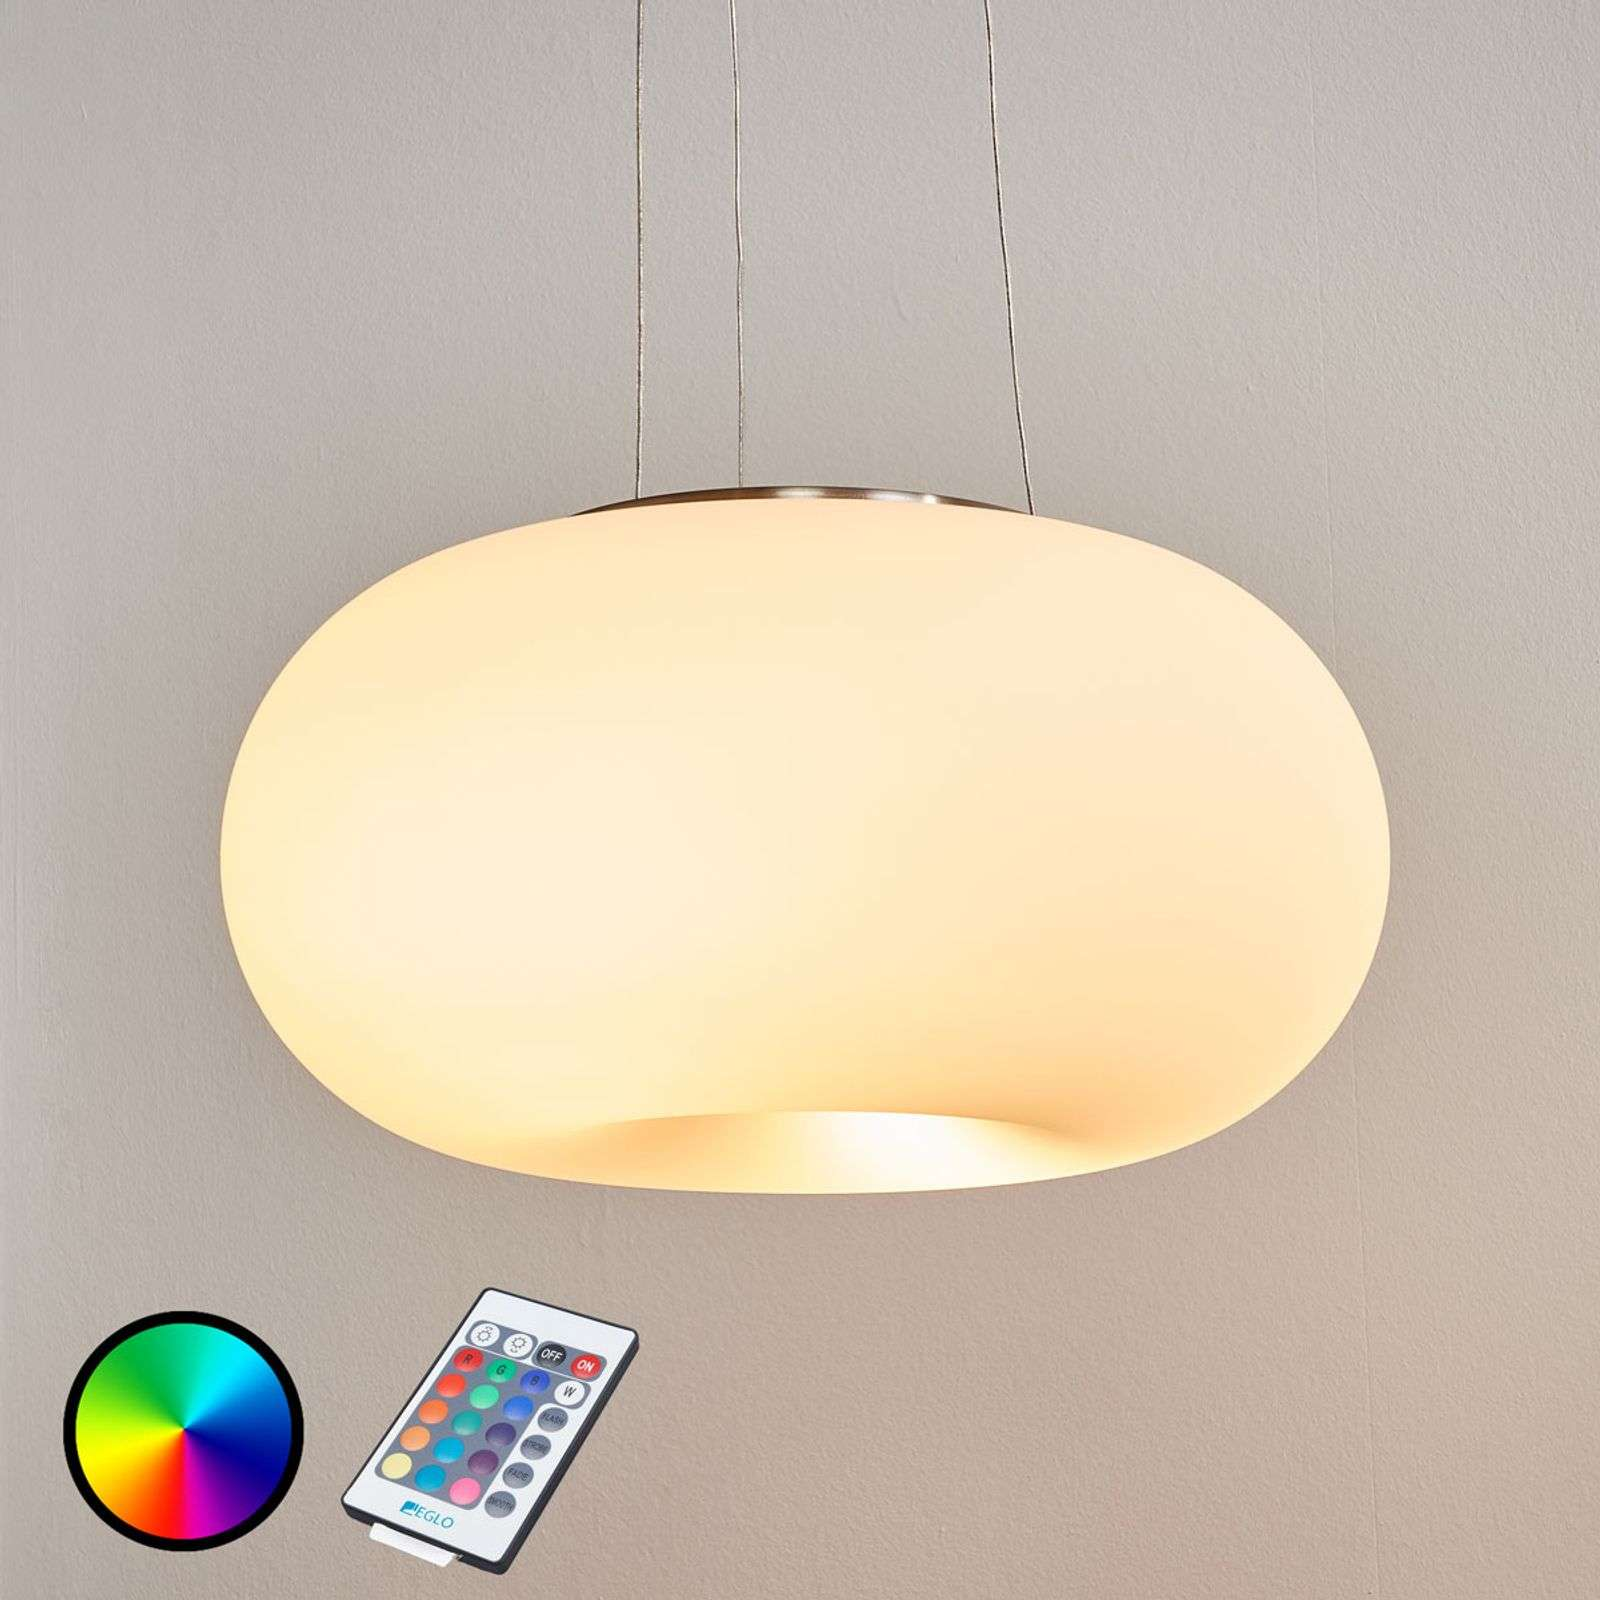 Suspension LED RGBW Optica-C avec télécommande